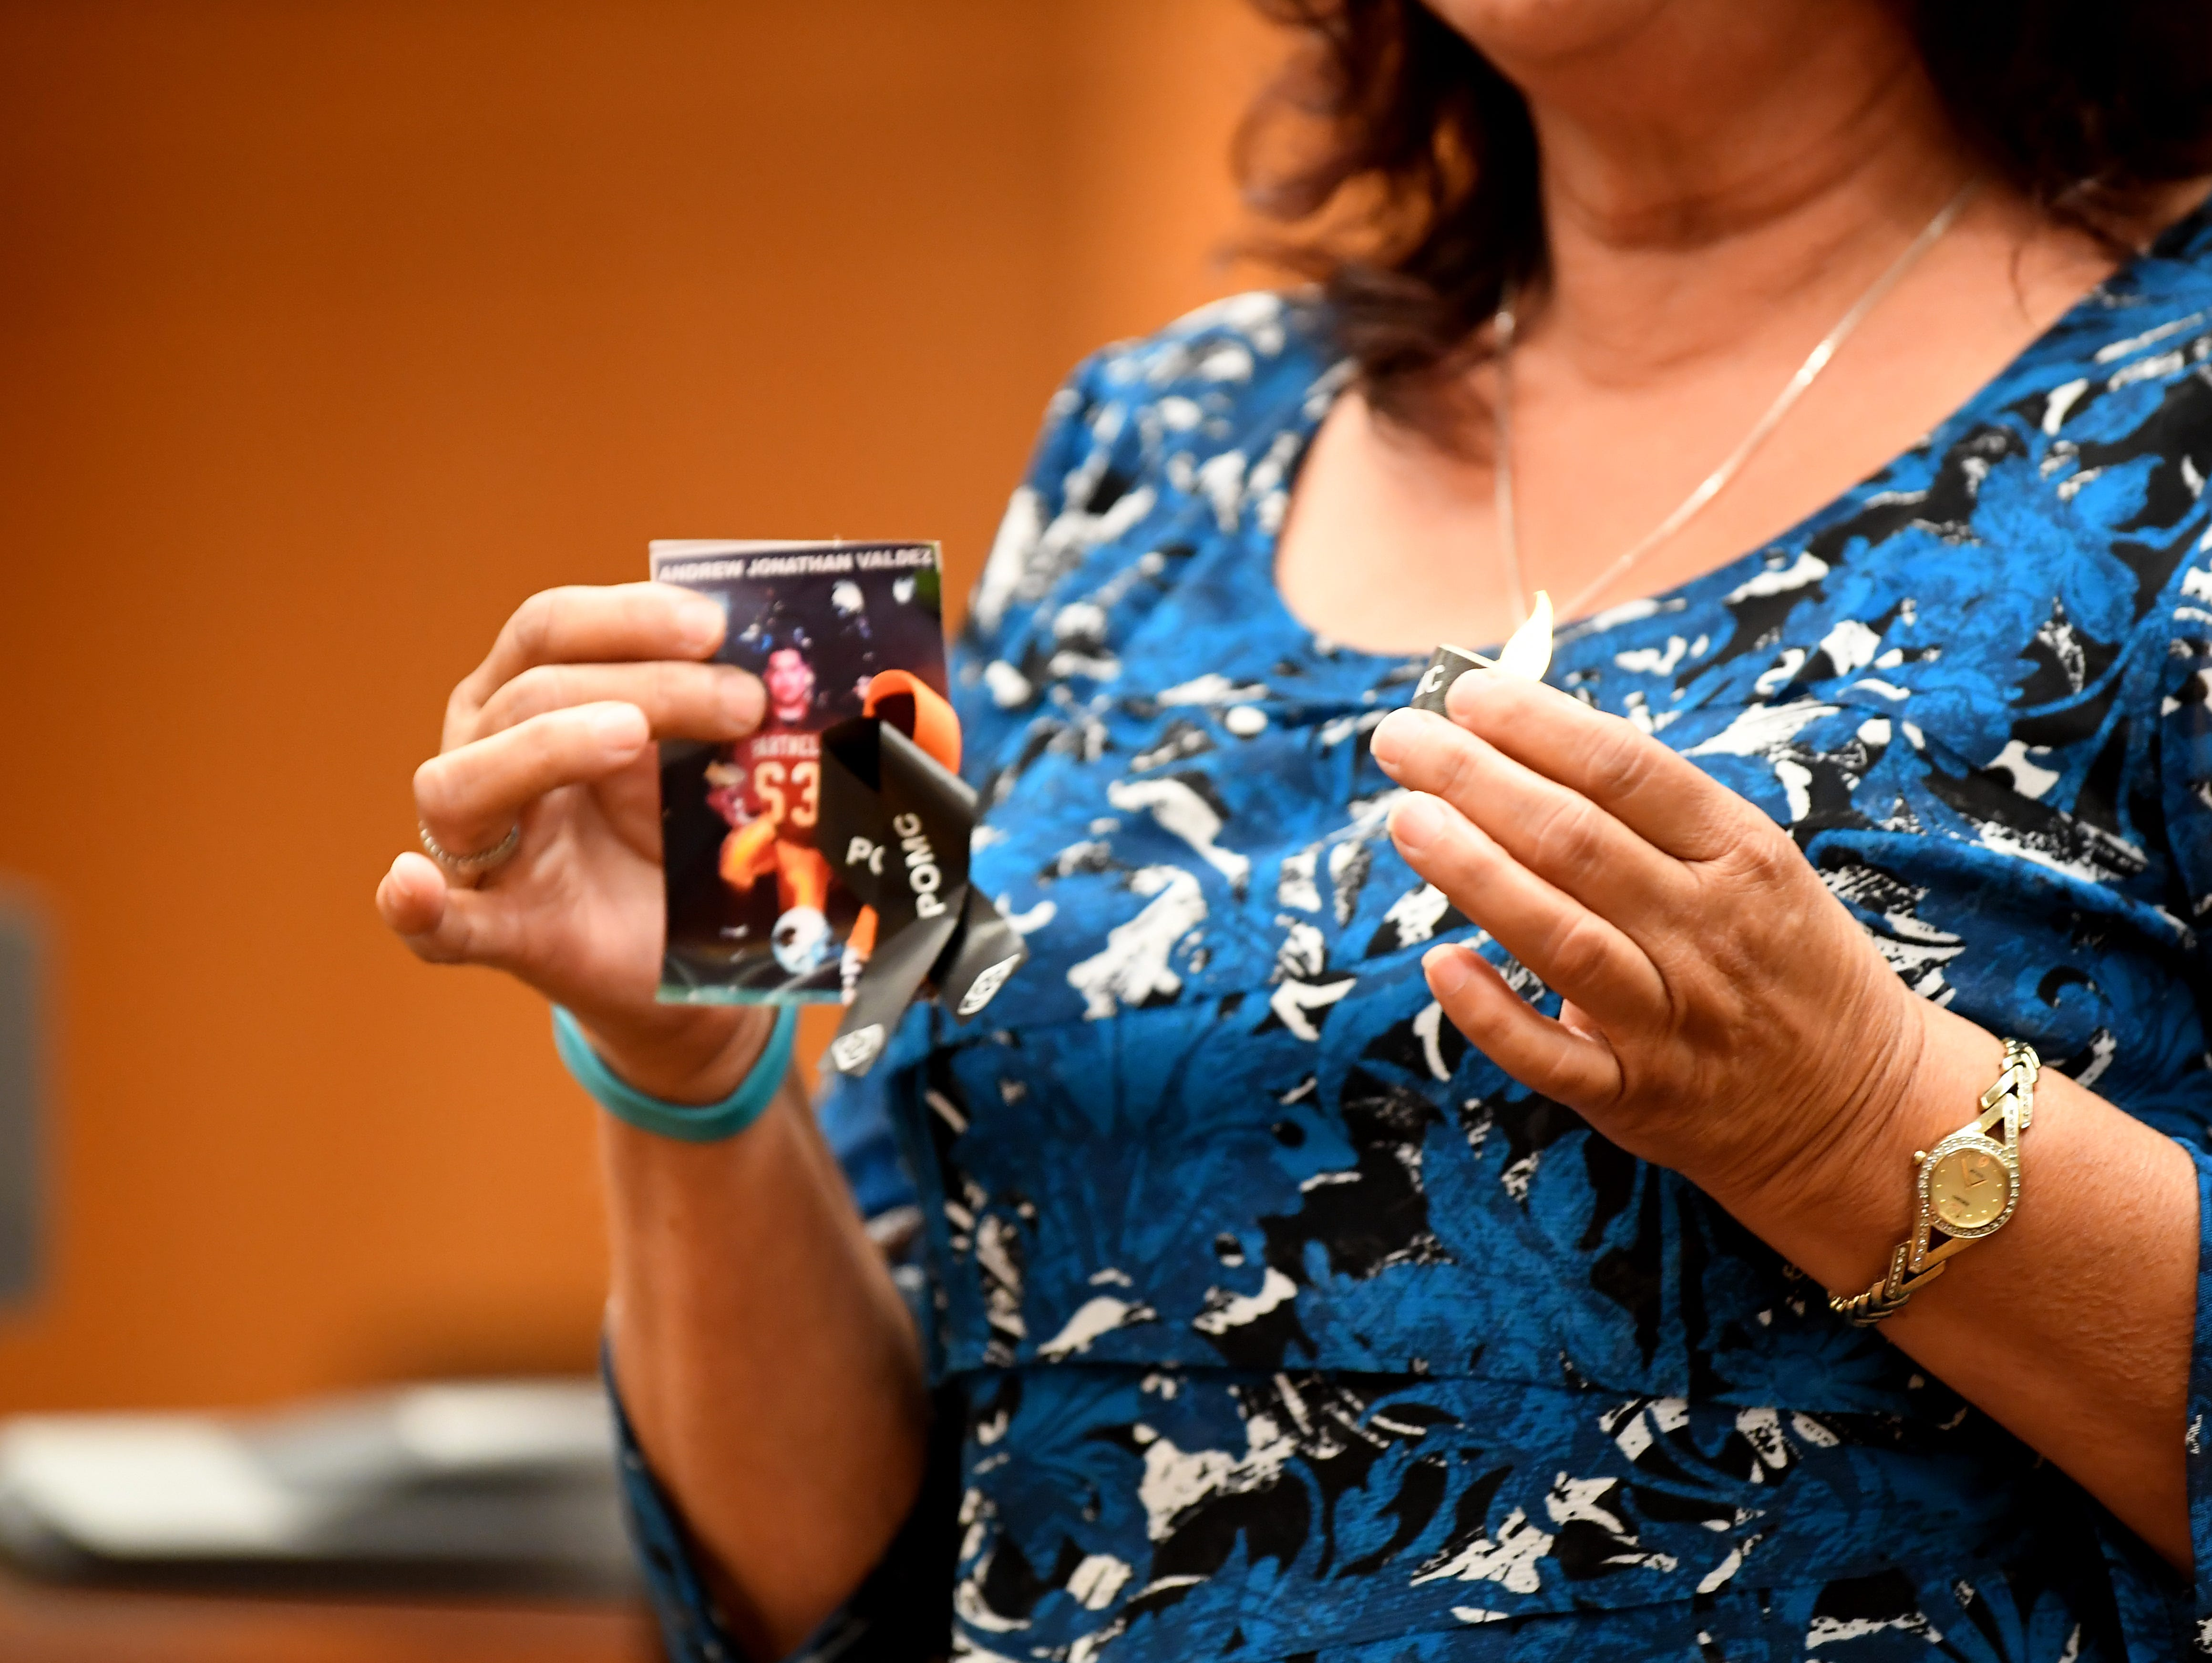 Emily Valdez lights a candle for her son who was killed in 1995 in Castroville.